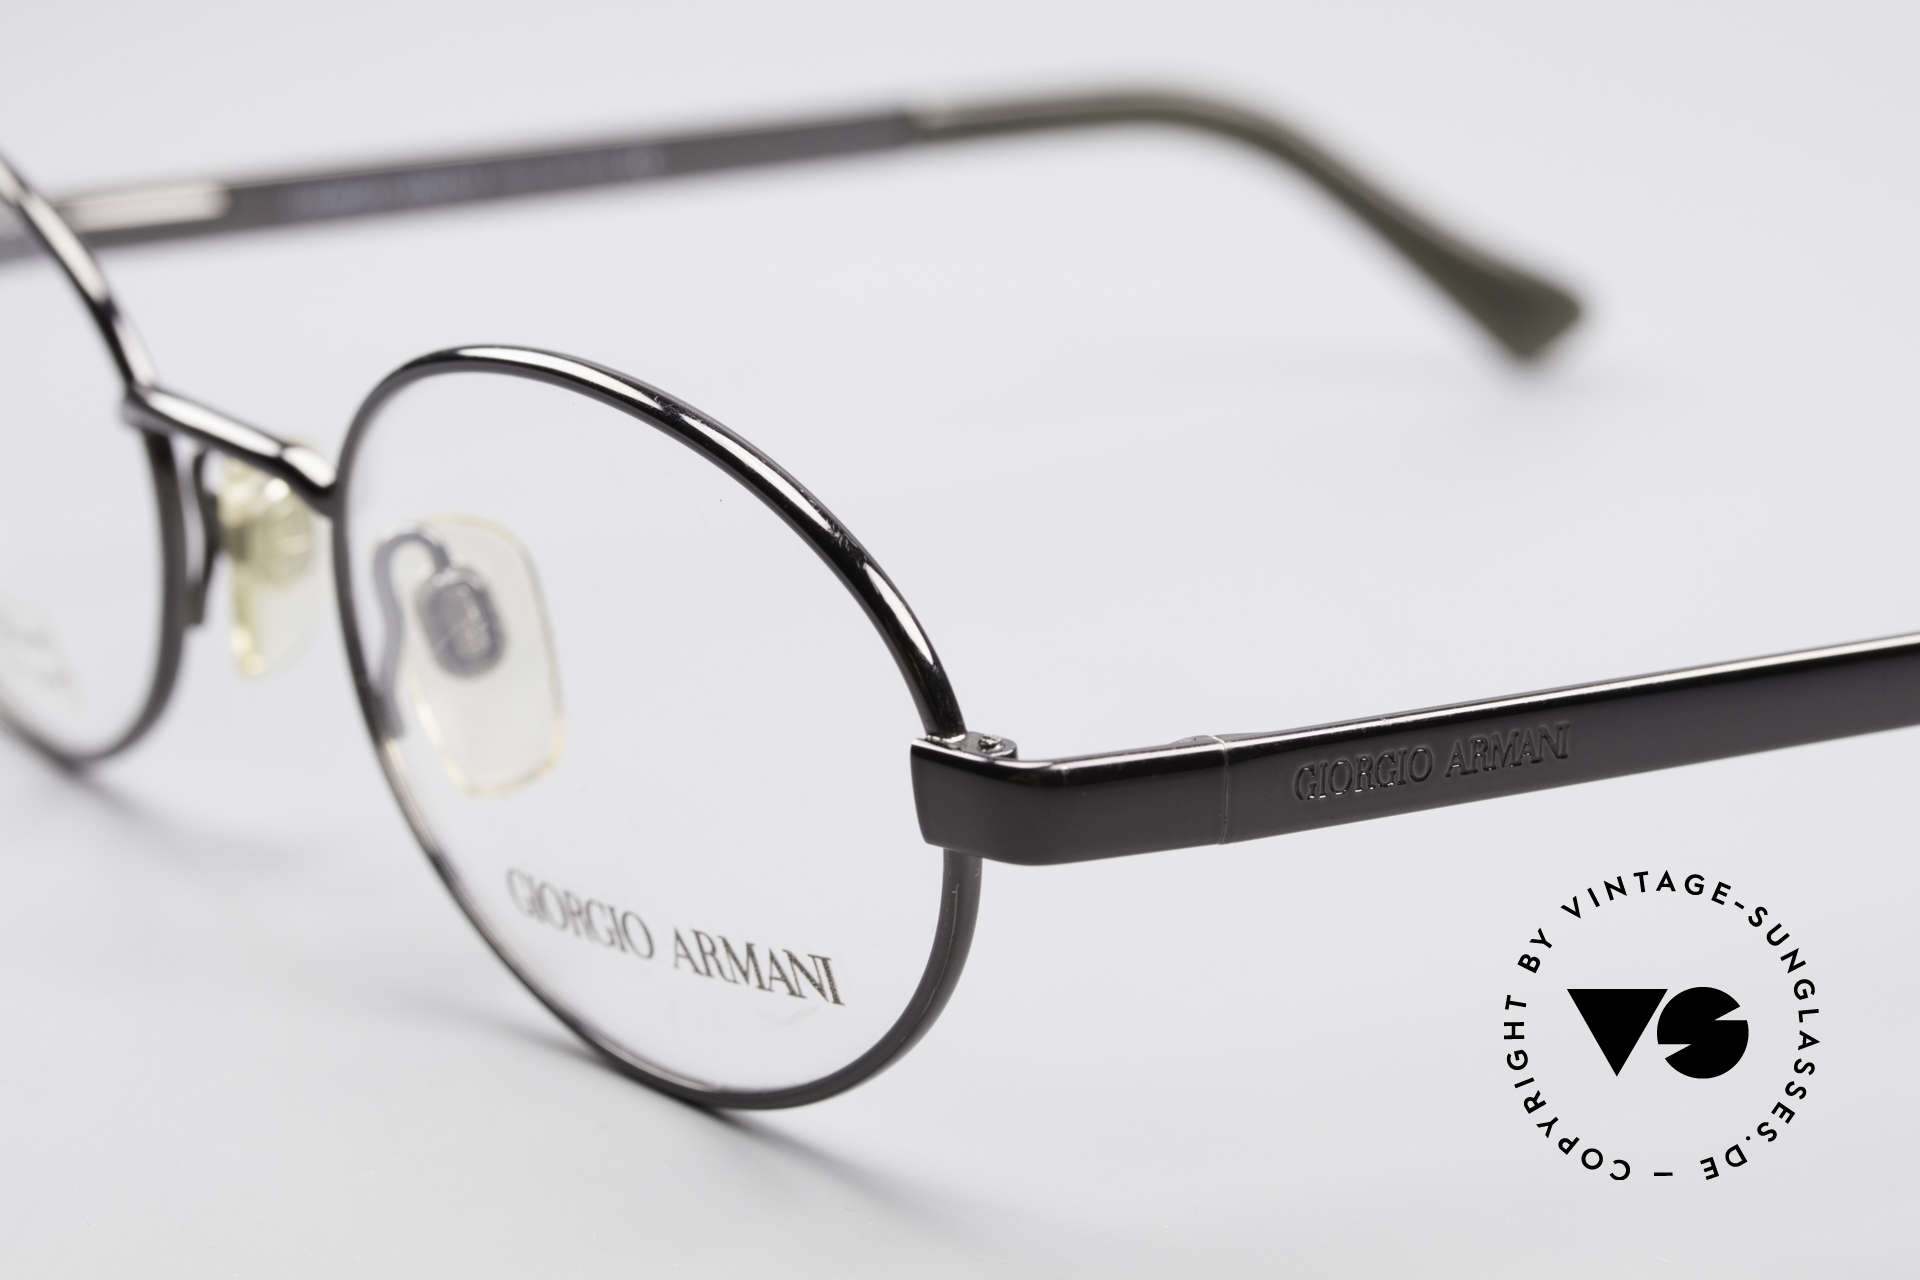 Giorgio Armani 257 90s Oval Vintage Eyeglasses, never worn (like all our 1990's designer classics), Made for Men and Women